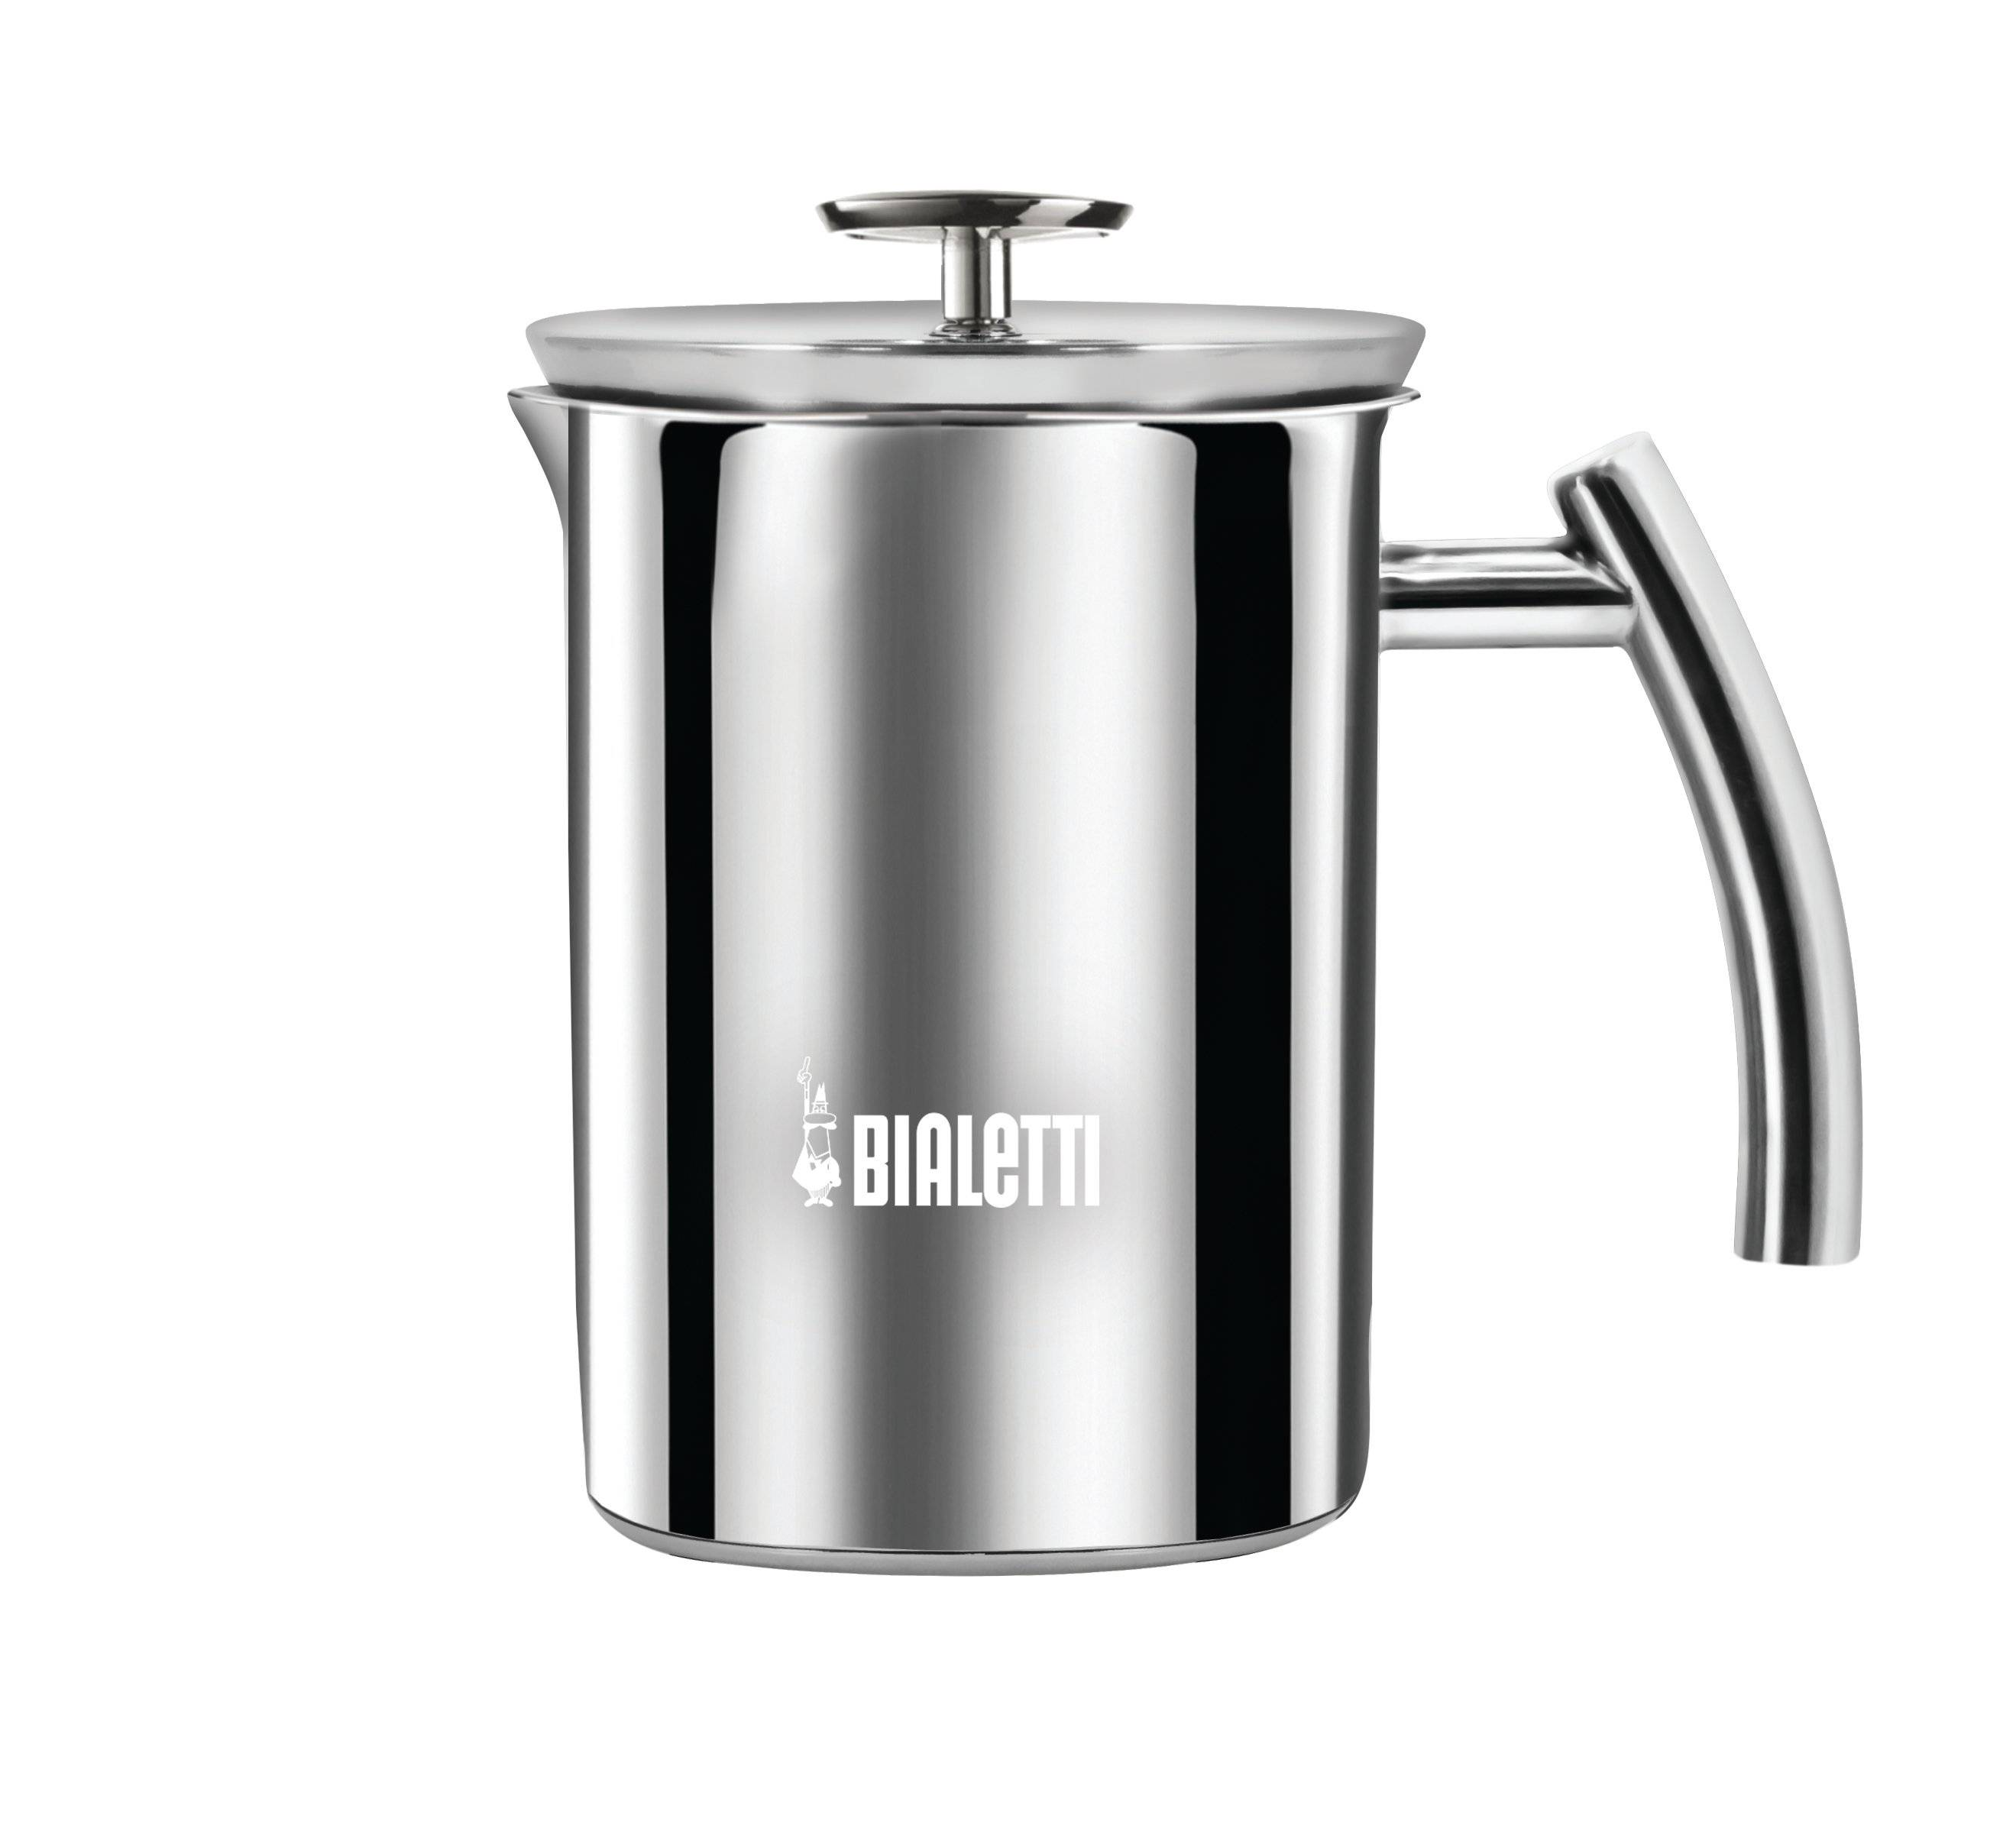 Bialetti Tuttocrema Induction Milk Frother